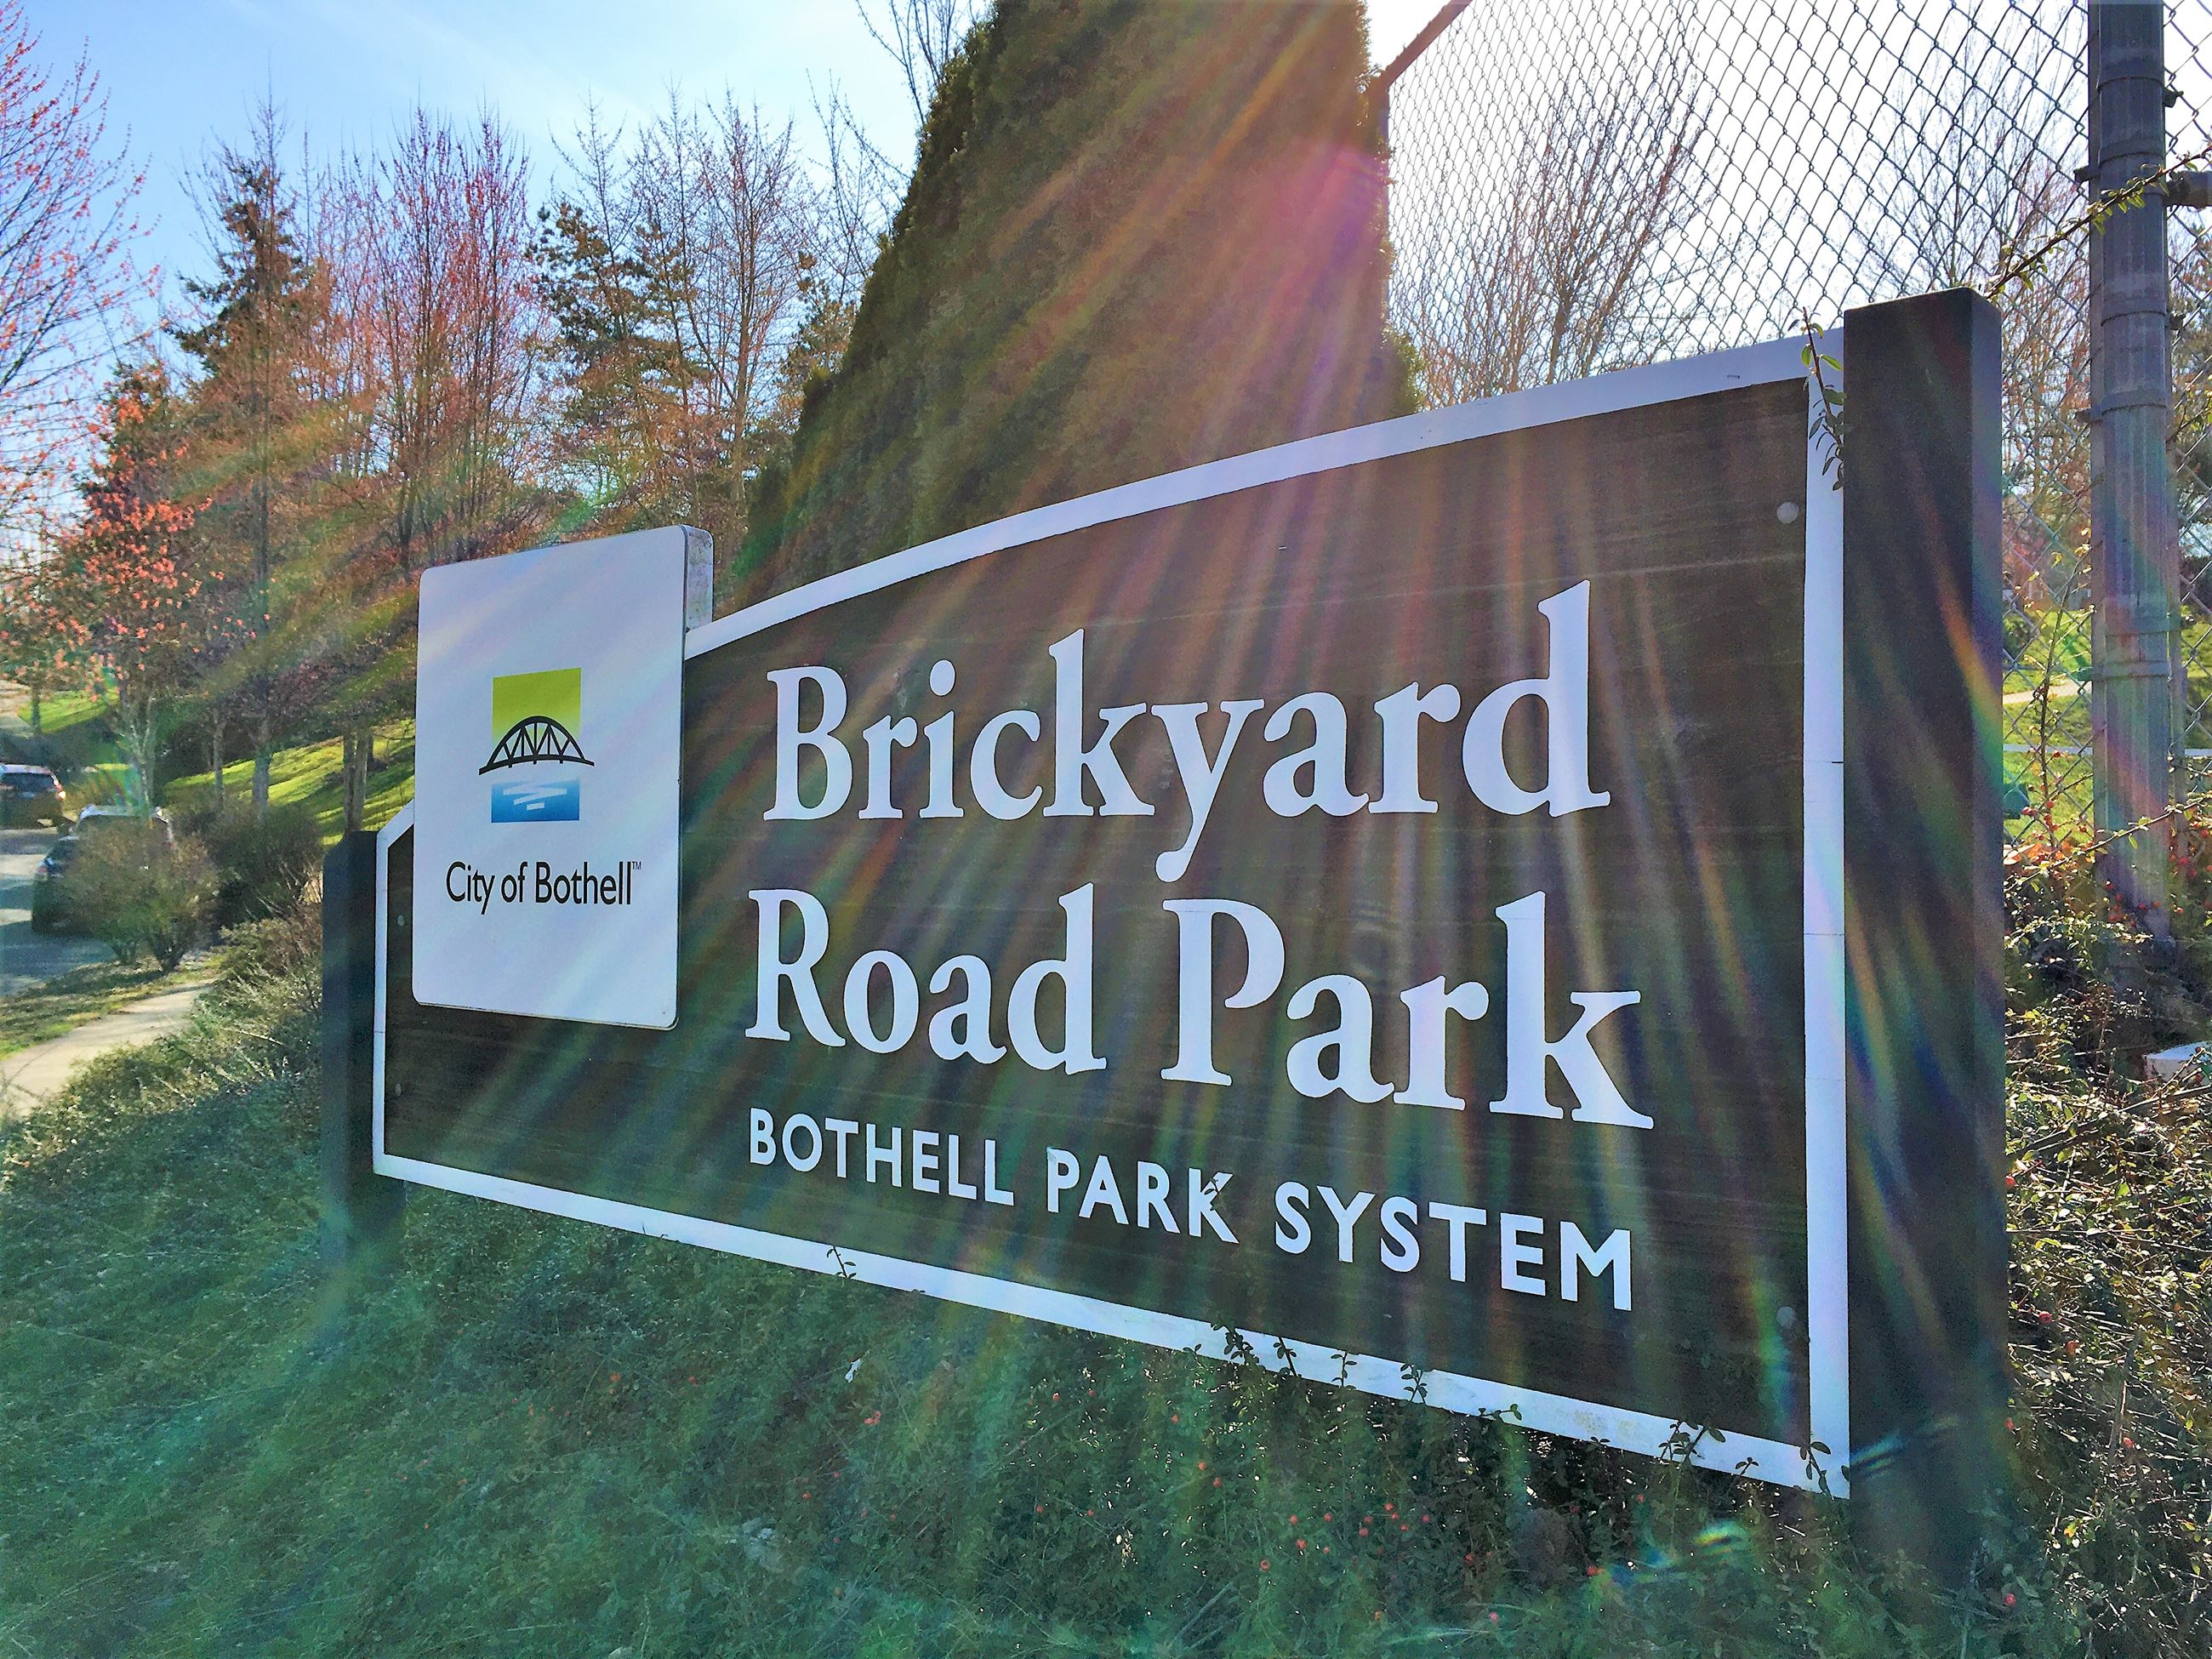 Brickyard Road Park entrance sign